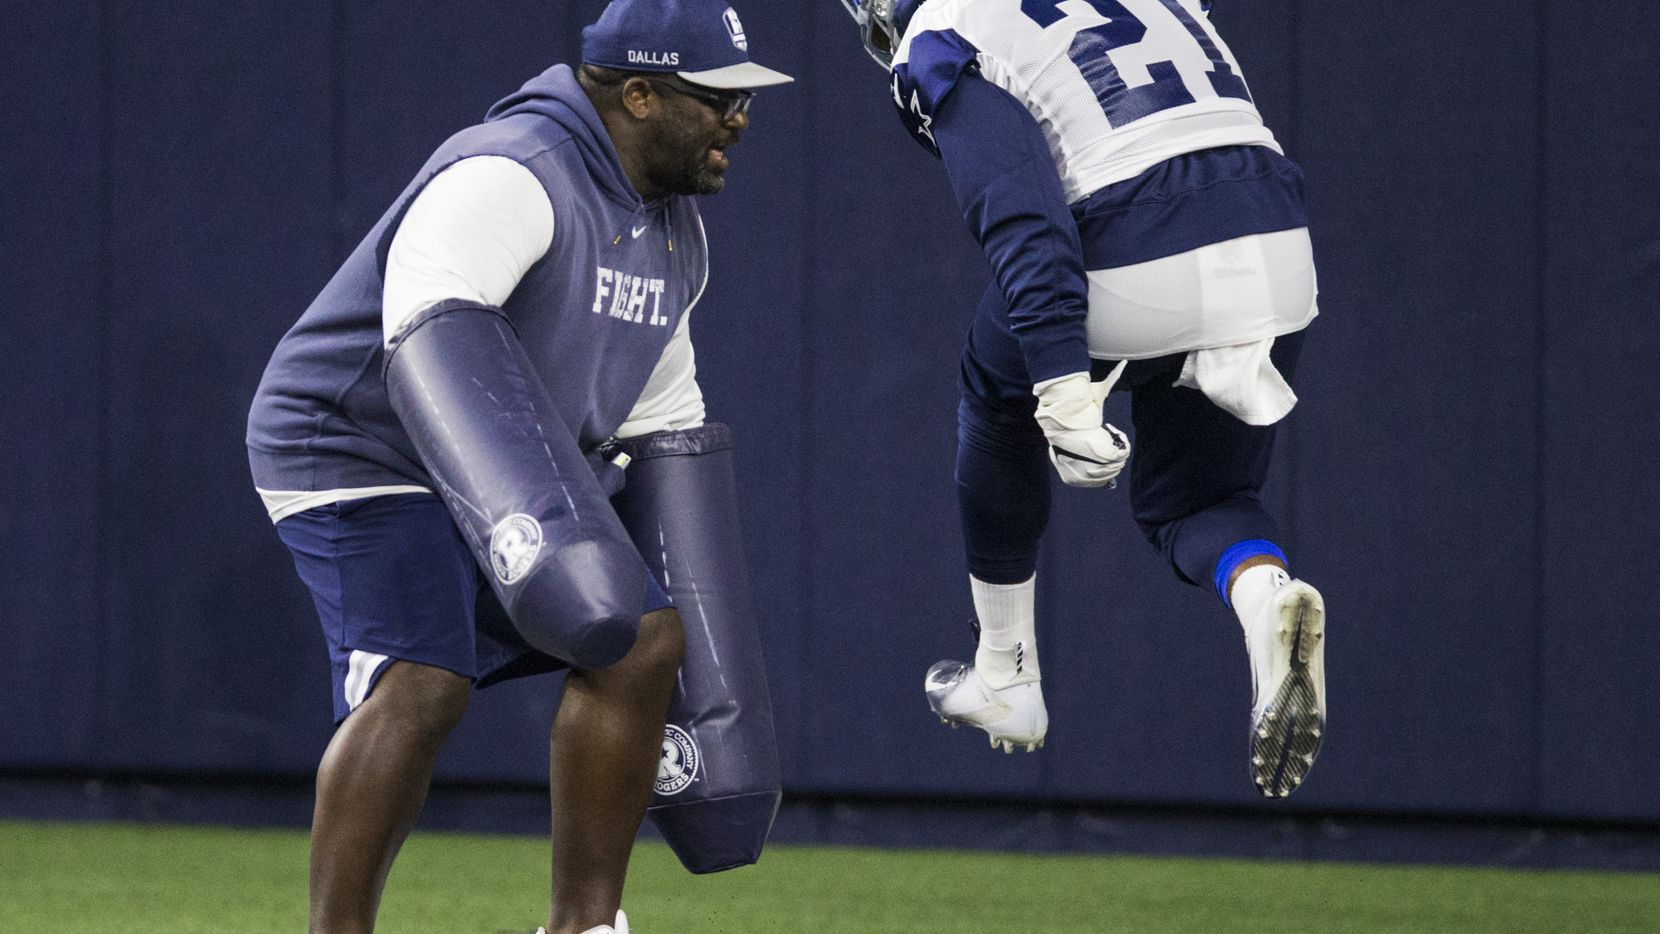 La demanda dice que en el lugar del accidente del corredor de los Dallas Cowboys Ezekiel Elliott (21) llegó el entrenador de running backs coach Gary Brown.